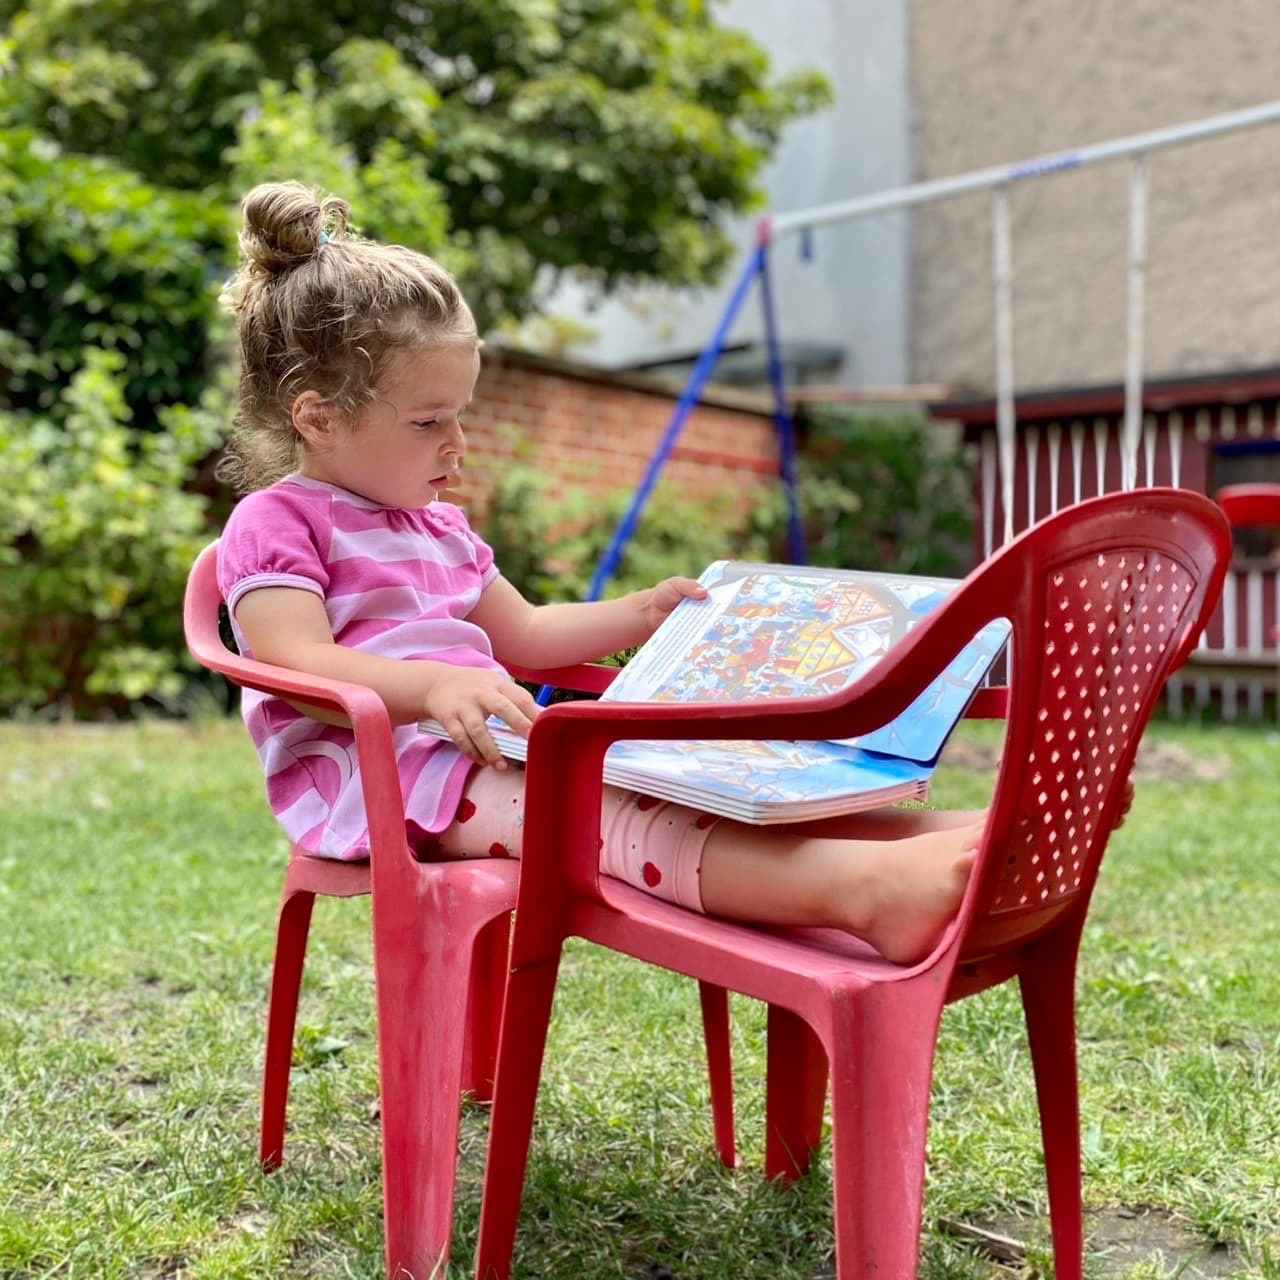 Child sitting on a chair in the garden reading a book